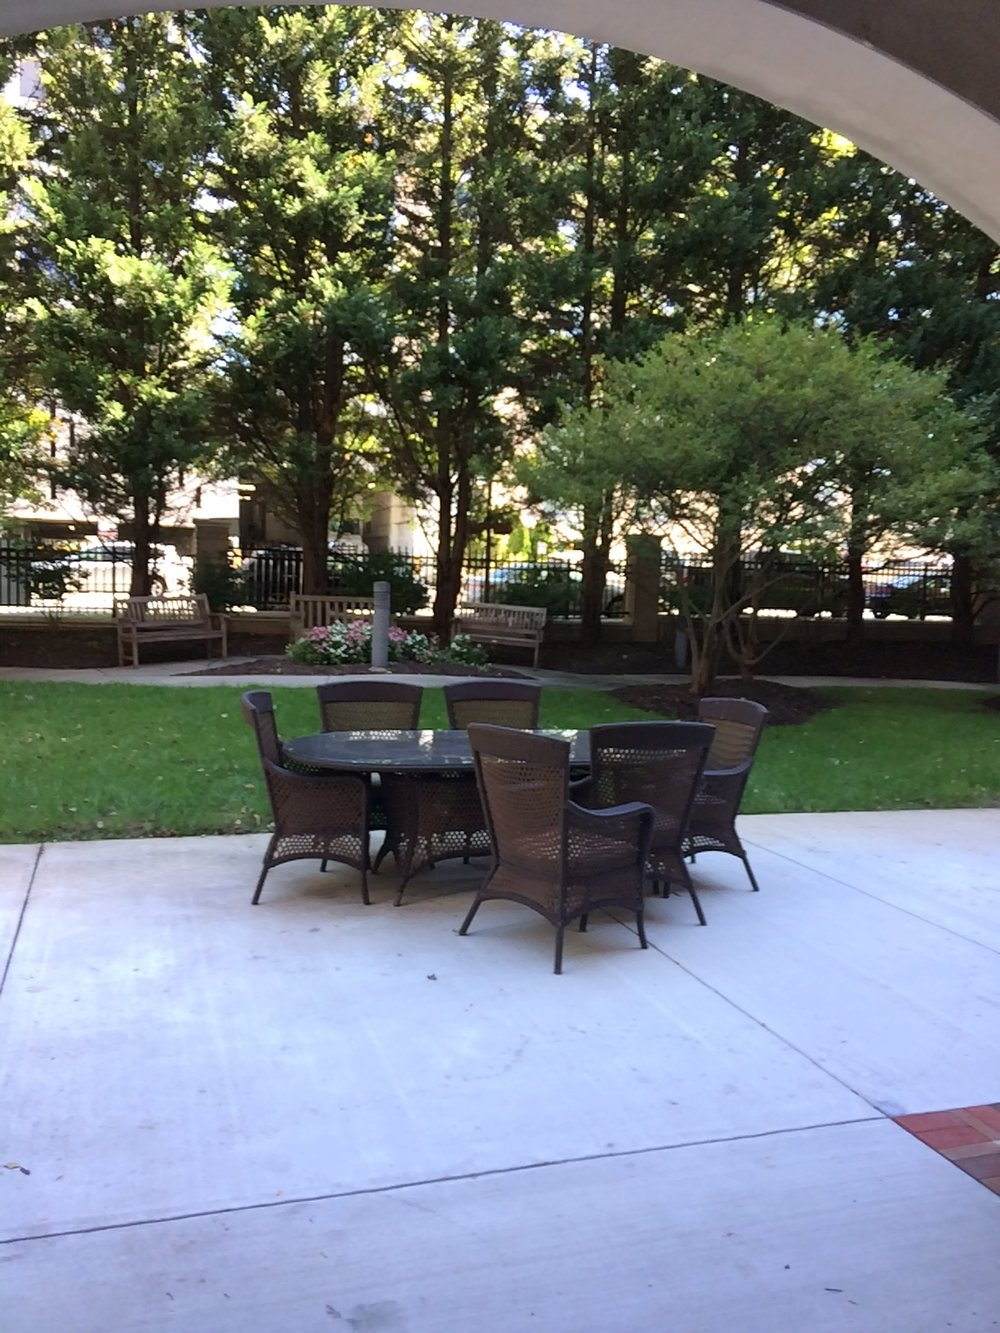 Outdoor seating area at Brighton Gardens